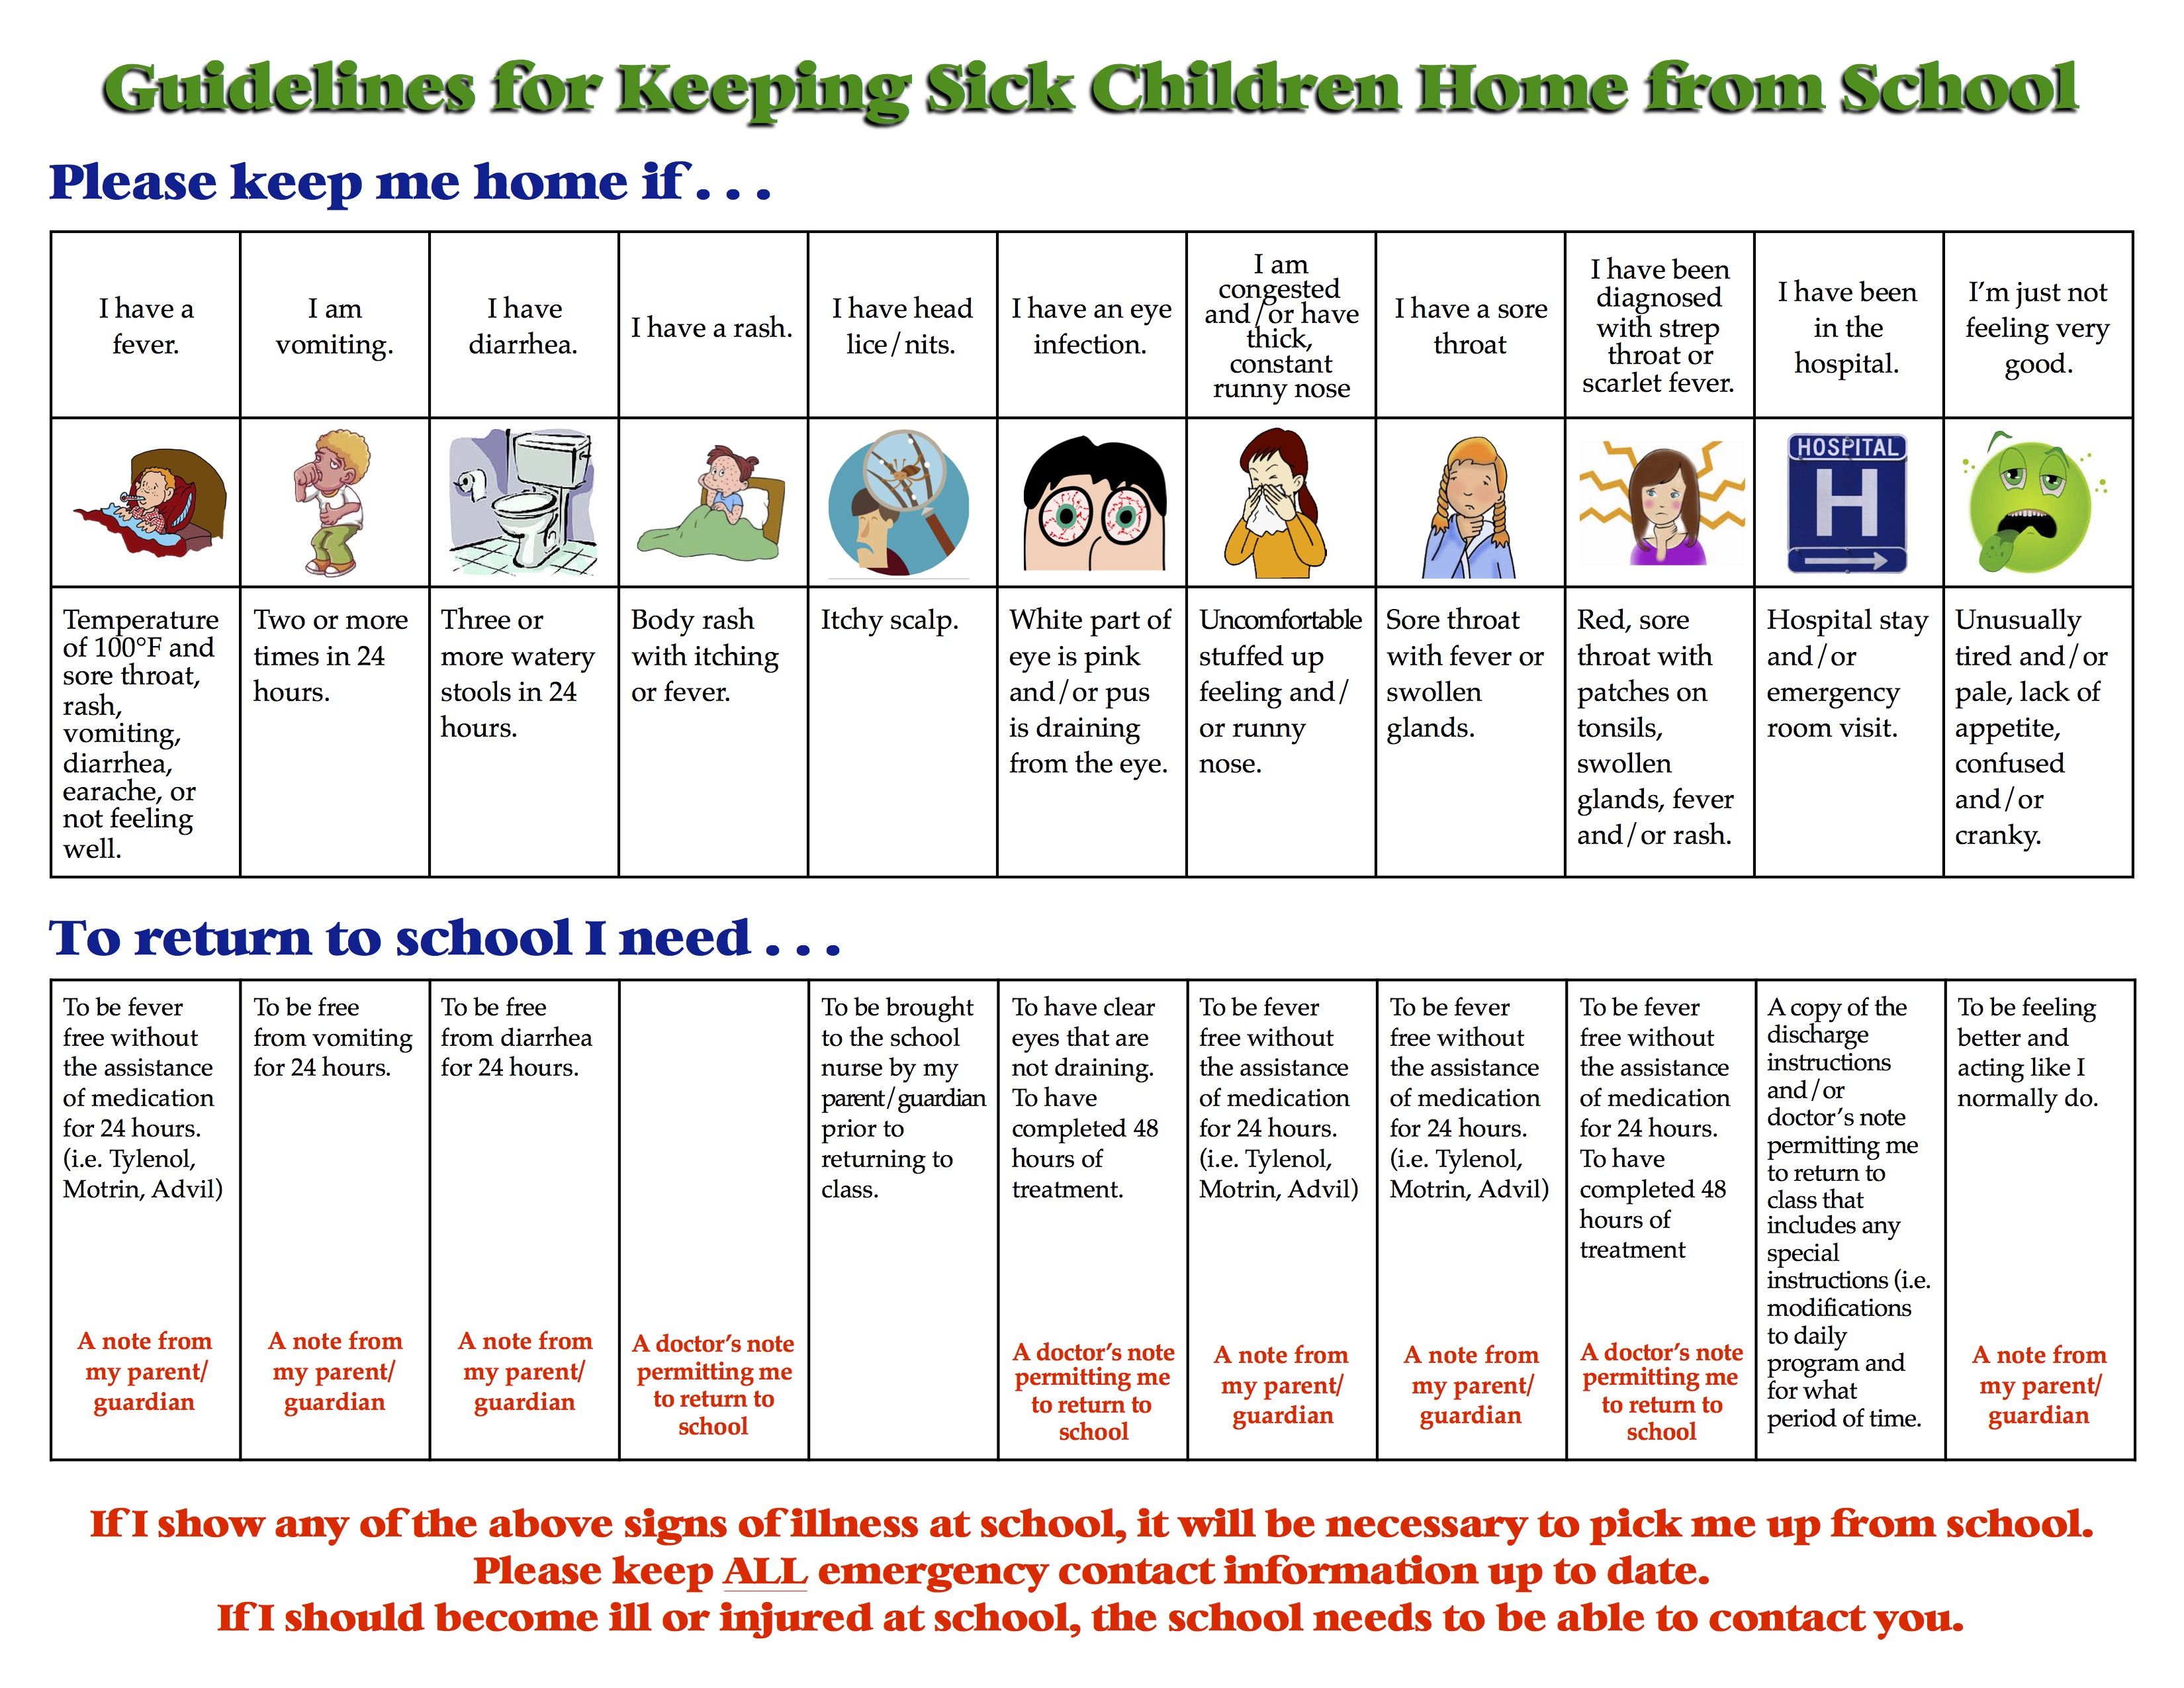 Guidance for keeping sick children home from school